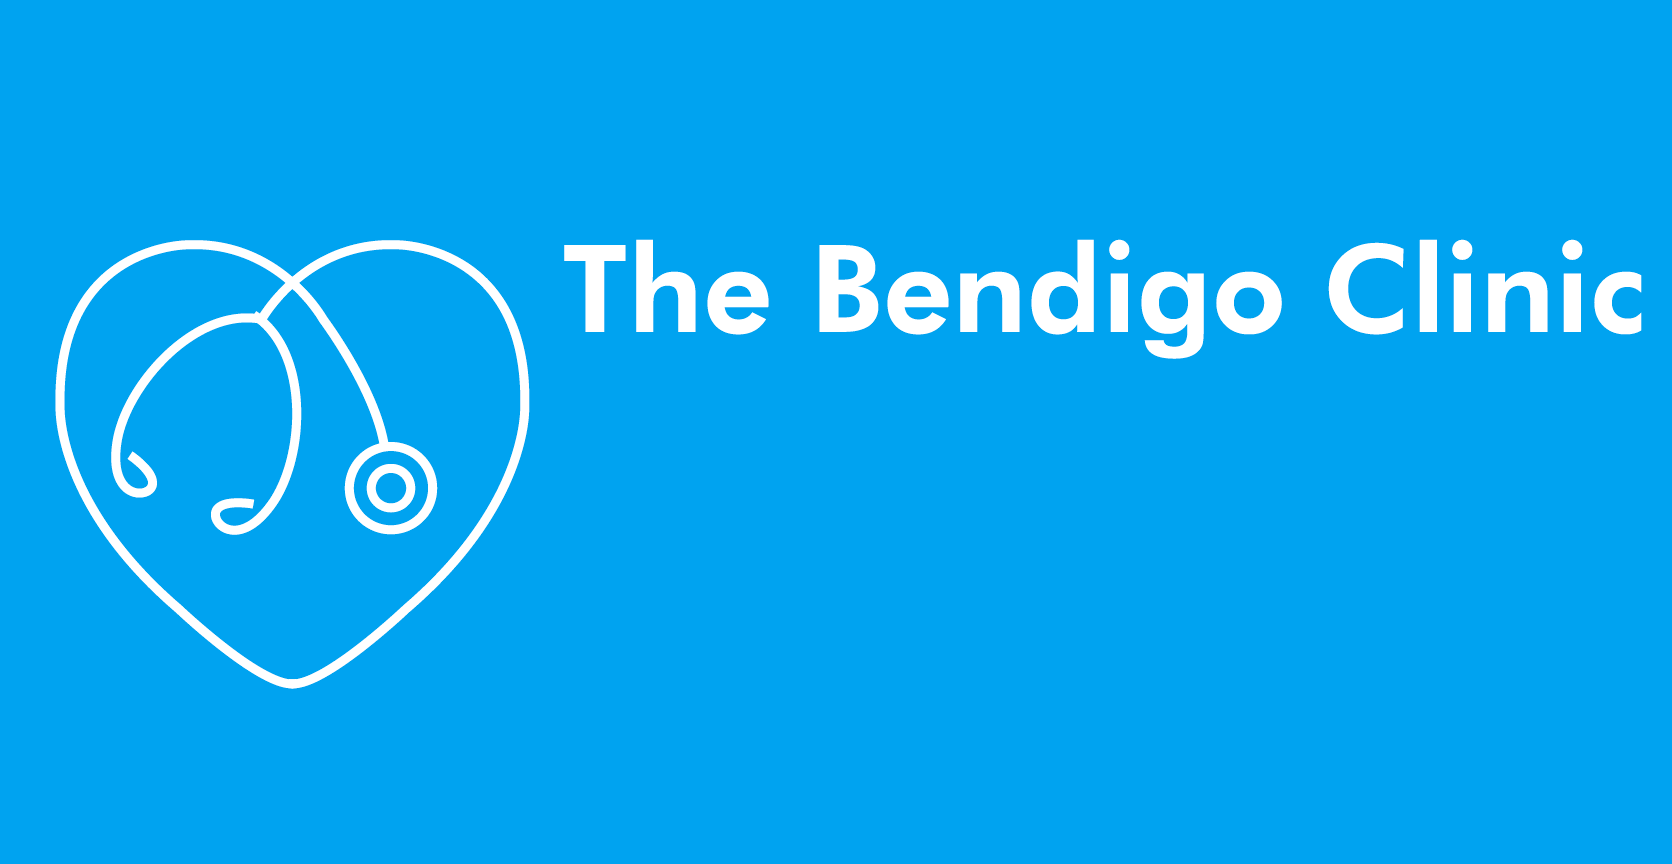 The Bendigo Clinic